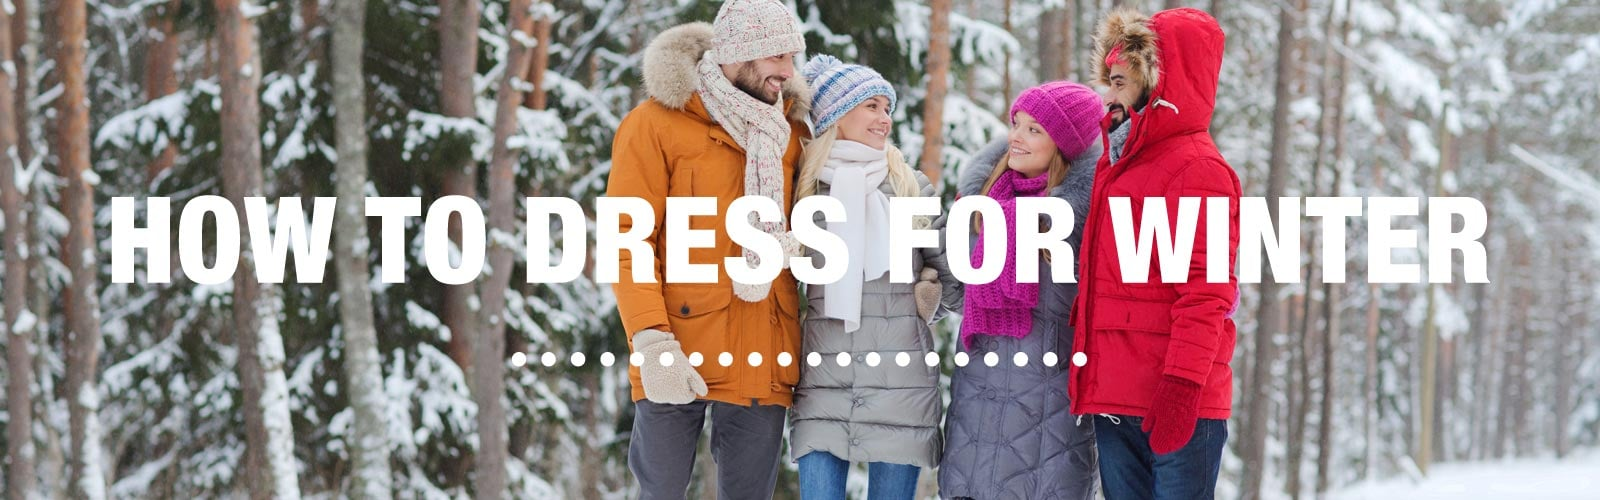 How to Dress for Winter Guide